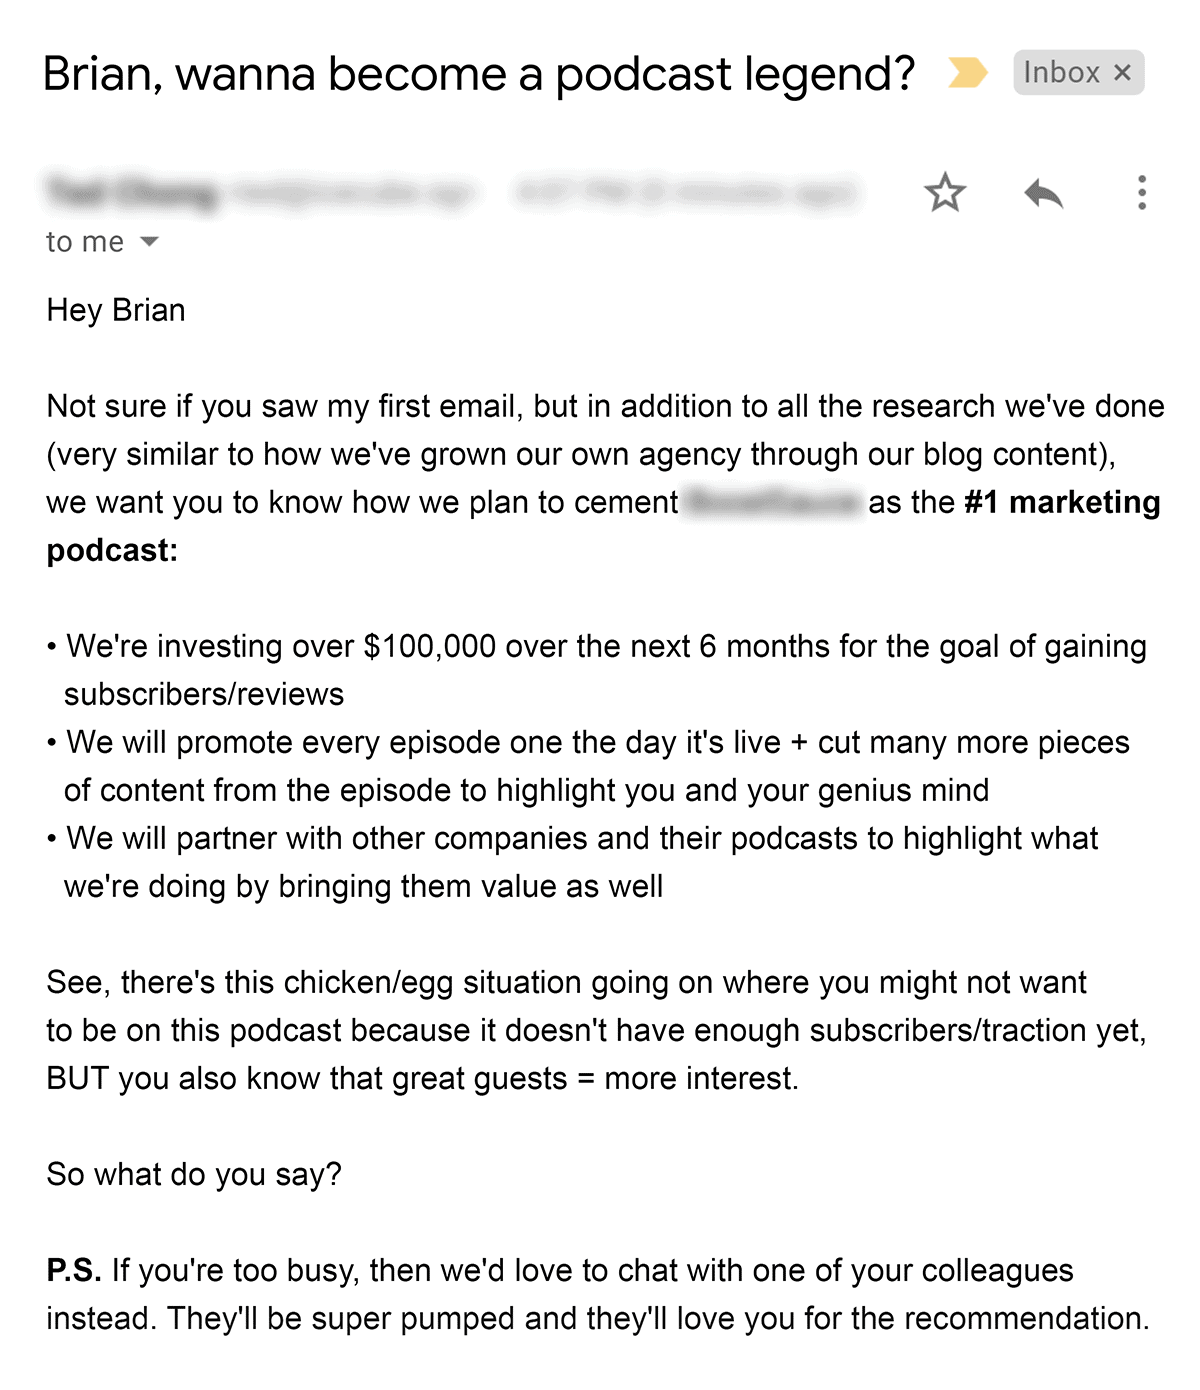 Follow-up email